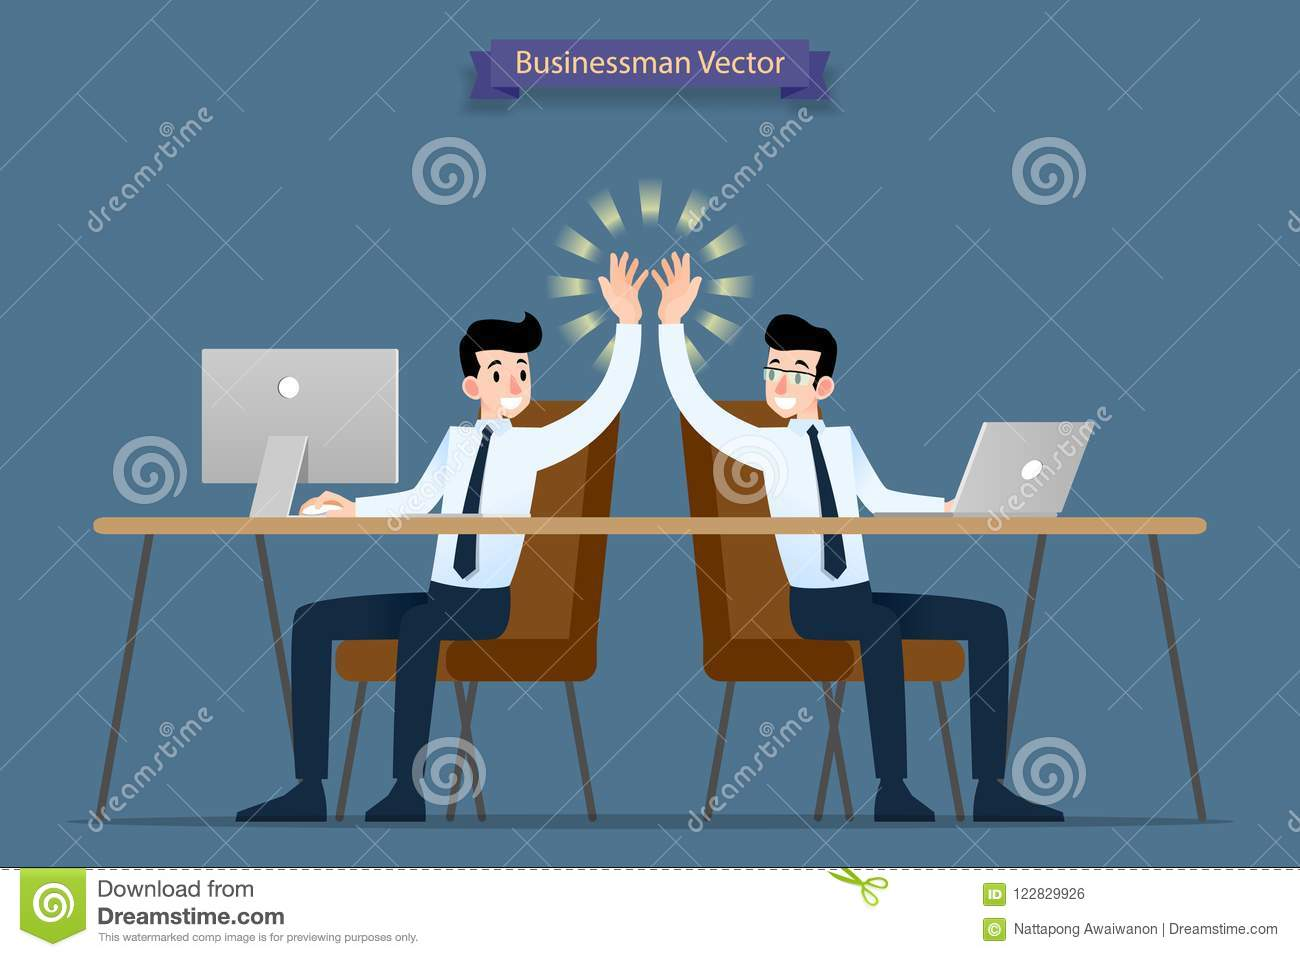 Successful businessman, teamwork working together by using computer and laptop giving high-five, congratulation each other after